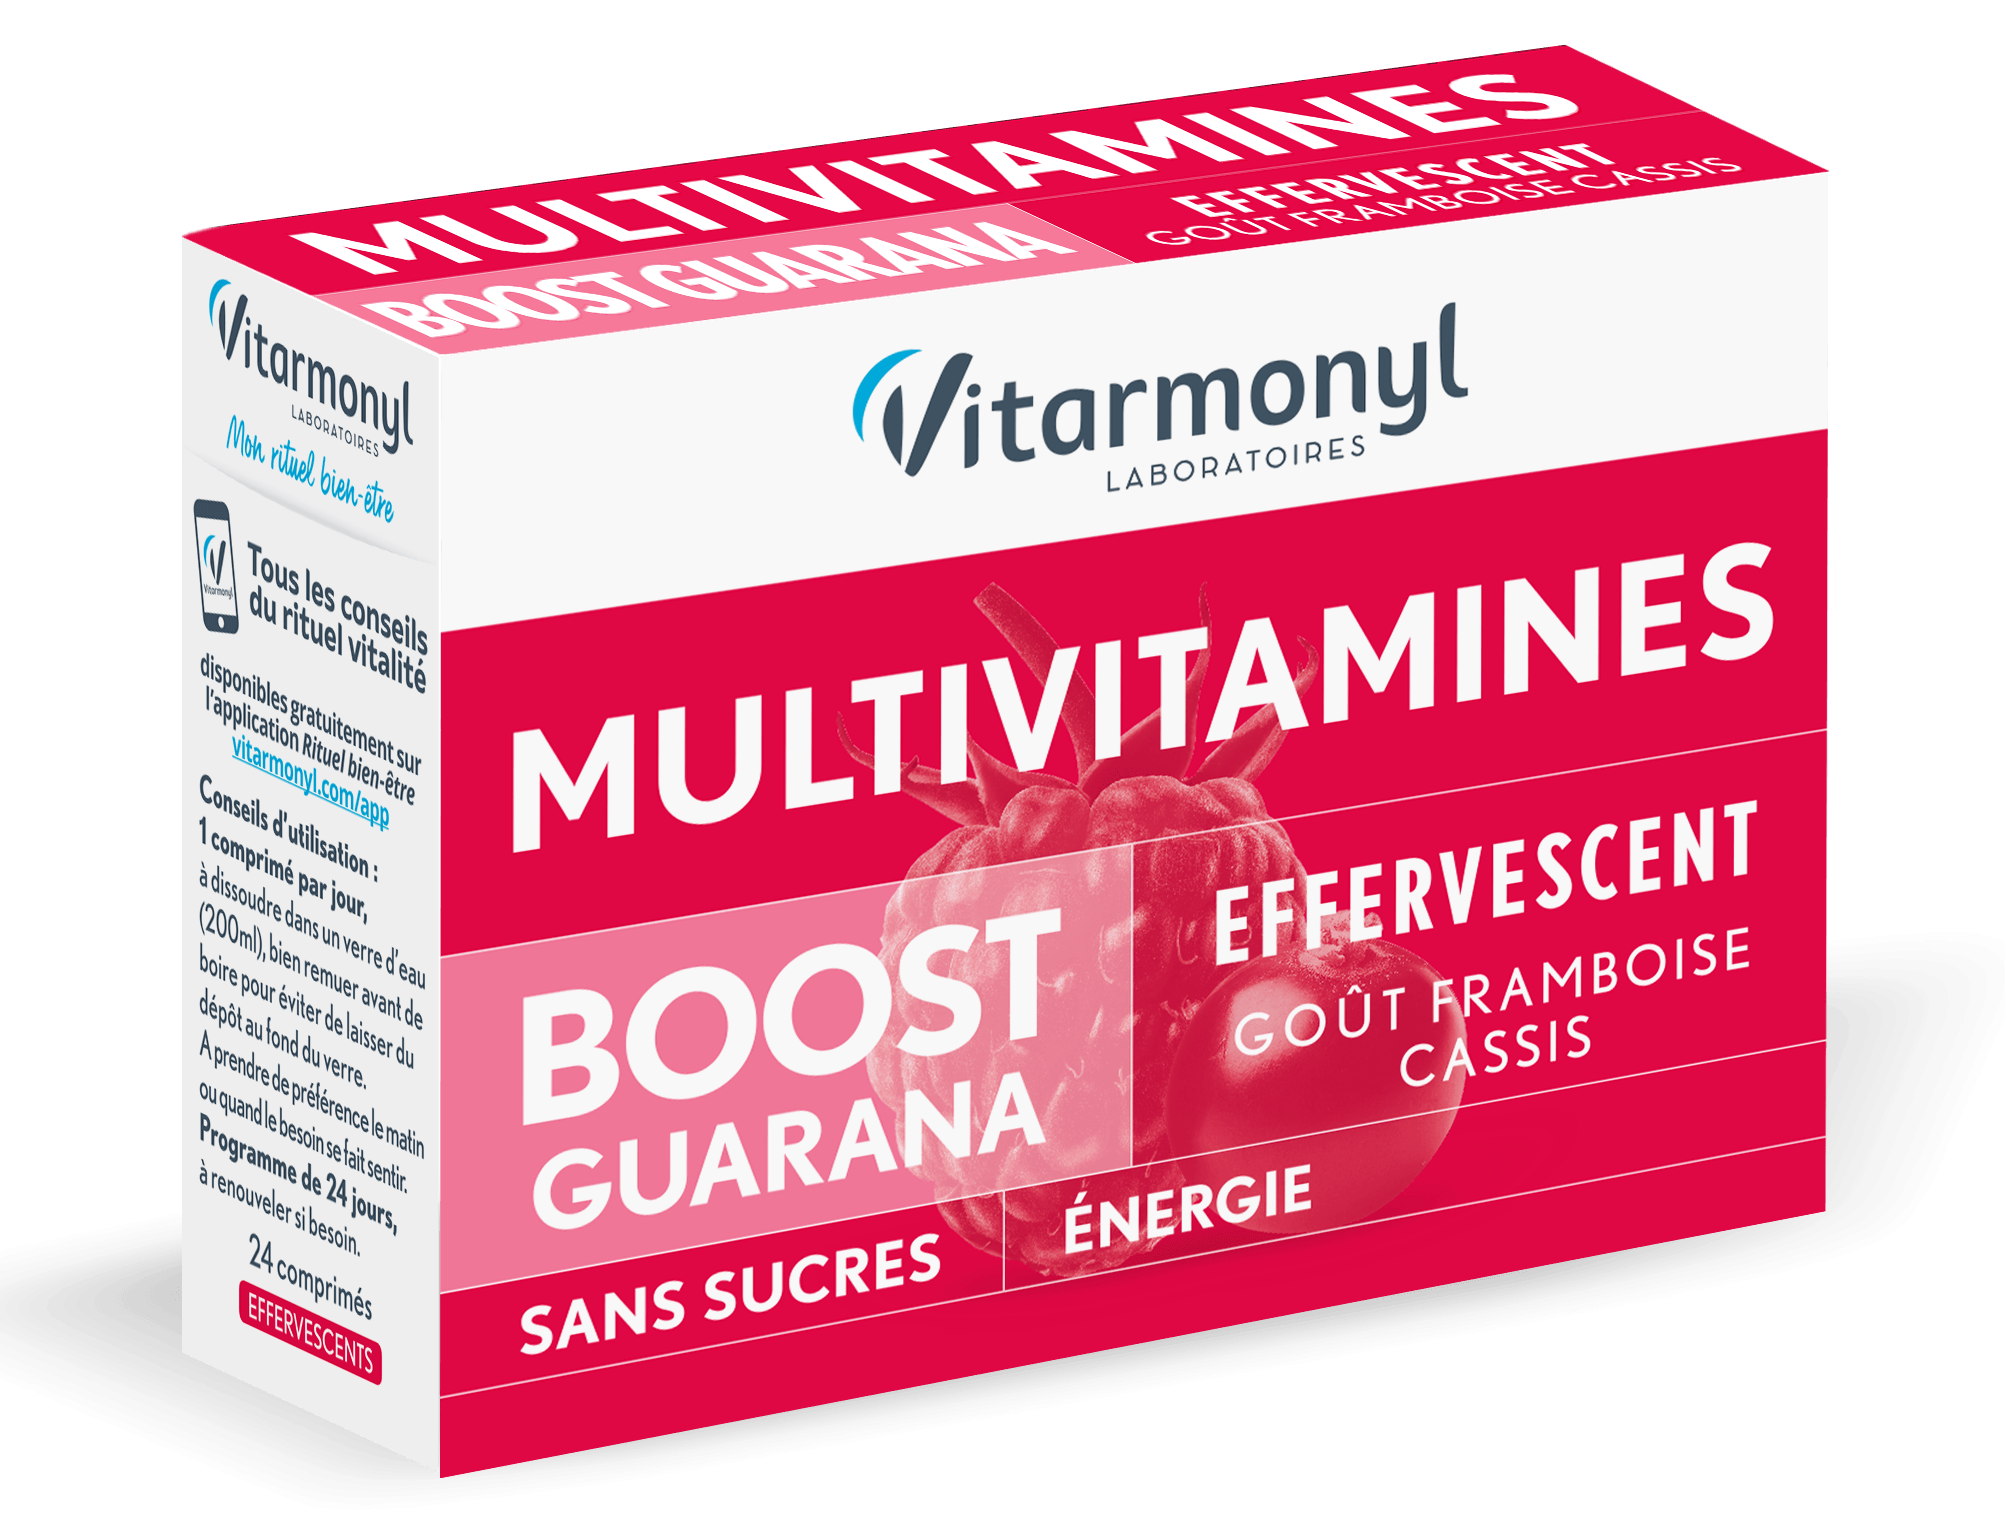 Image Multivitamines BOOST GUARANA